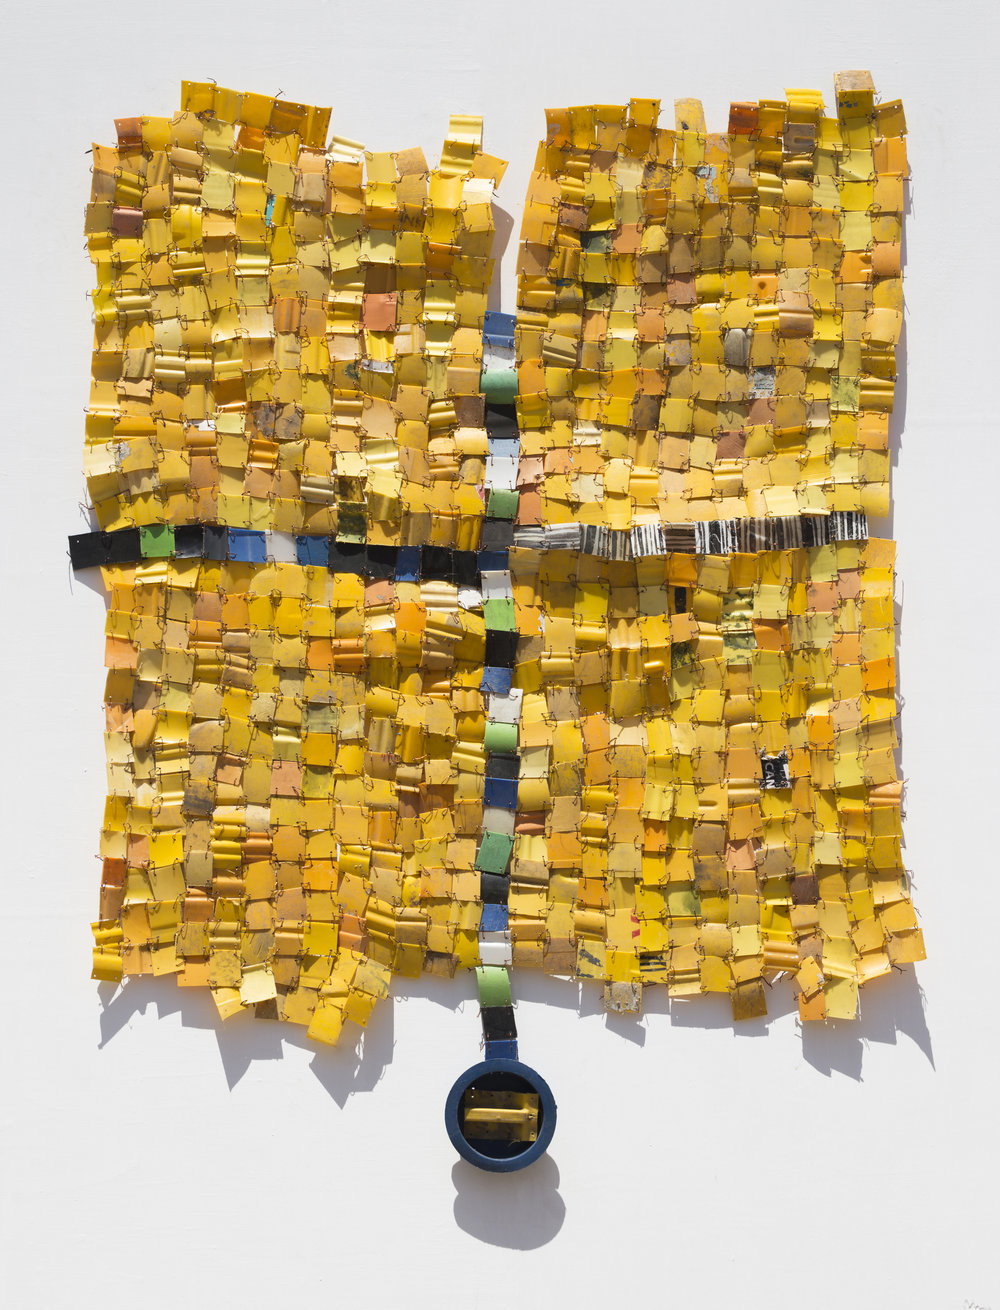 "SERGE ATTUKWEI CLOTTEY. ""GOOD JUDGEMENT"" (2018). PLASTICS, WIRES AND OIL PAINT. 66 X 51 IN. PHOTO: NII ODZENMA."